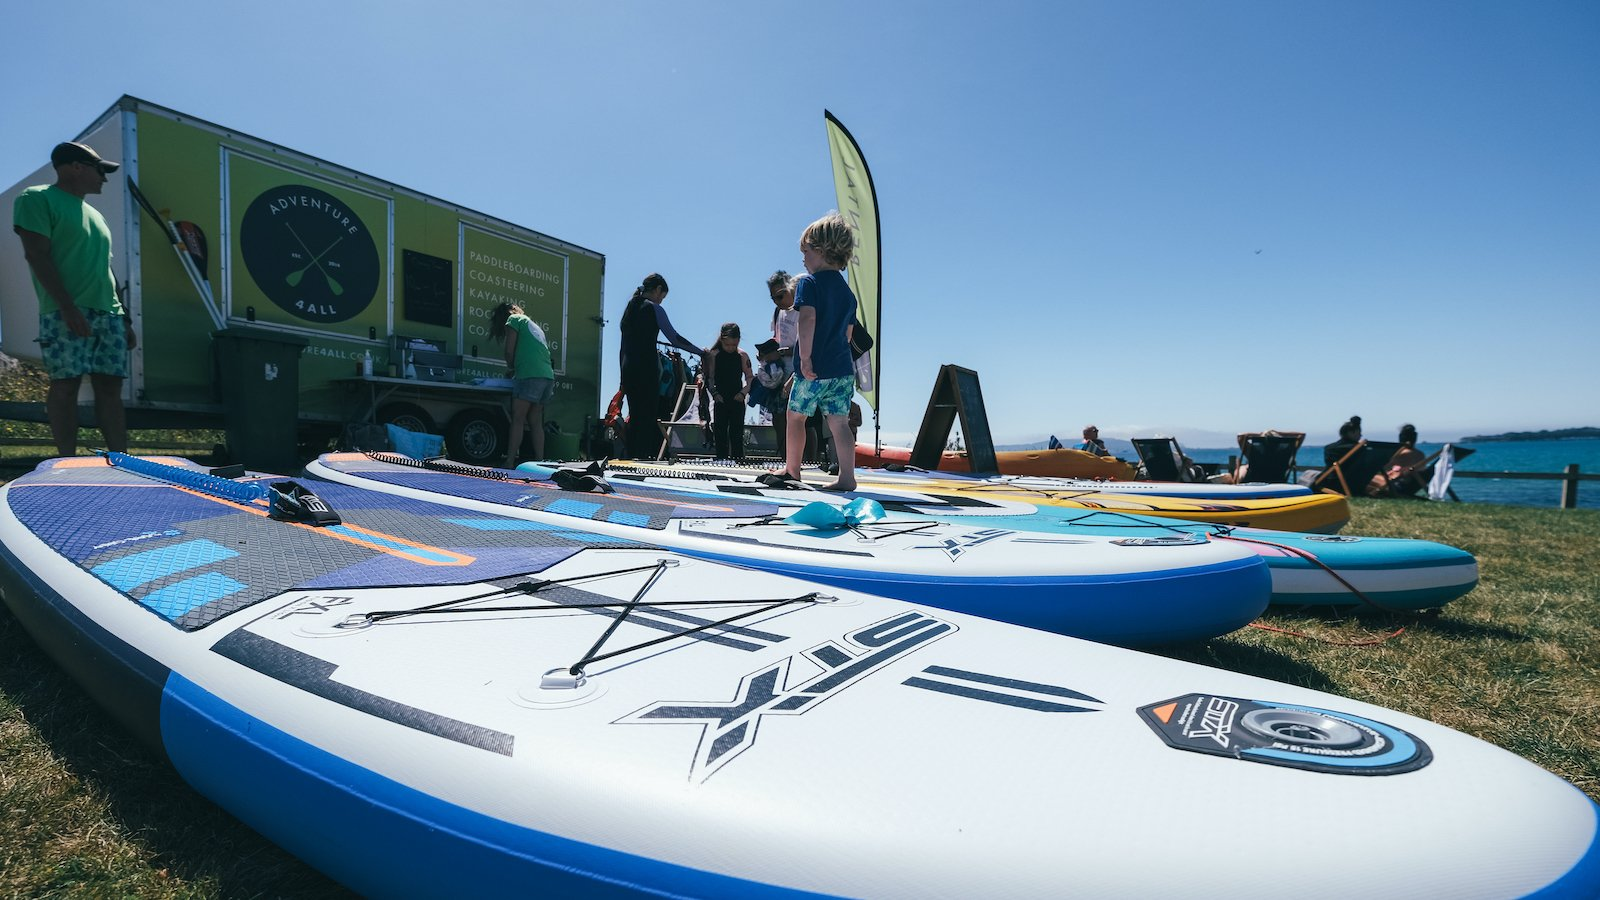 adventure-4-all-sup-rental-all-sups